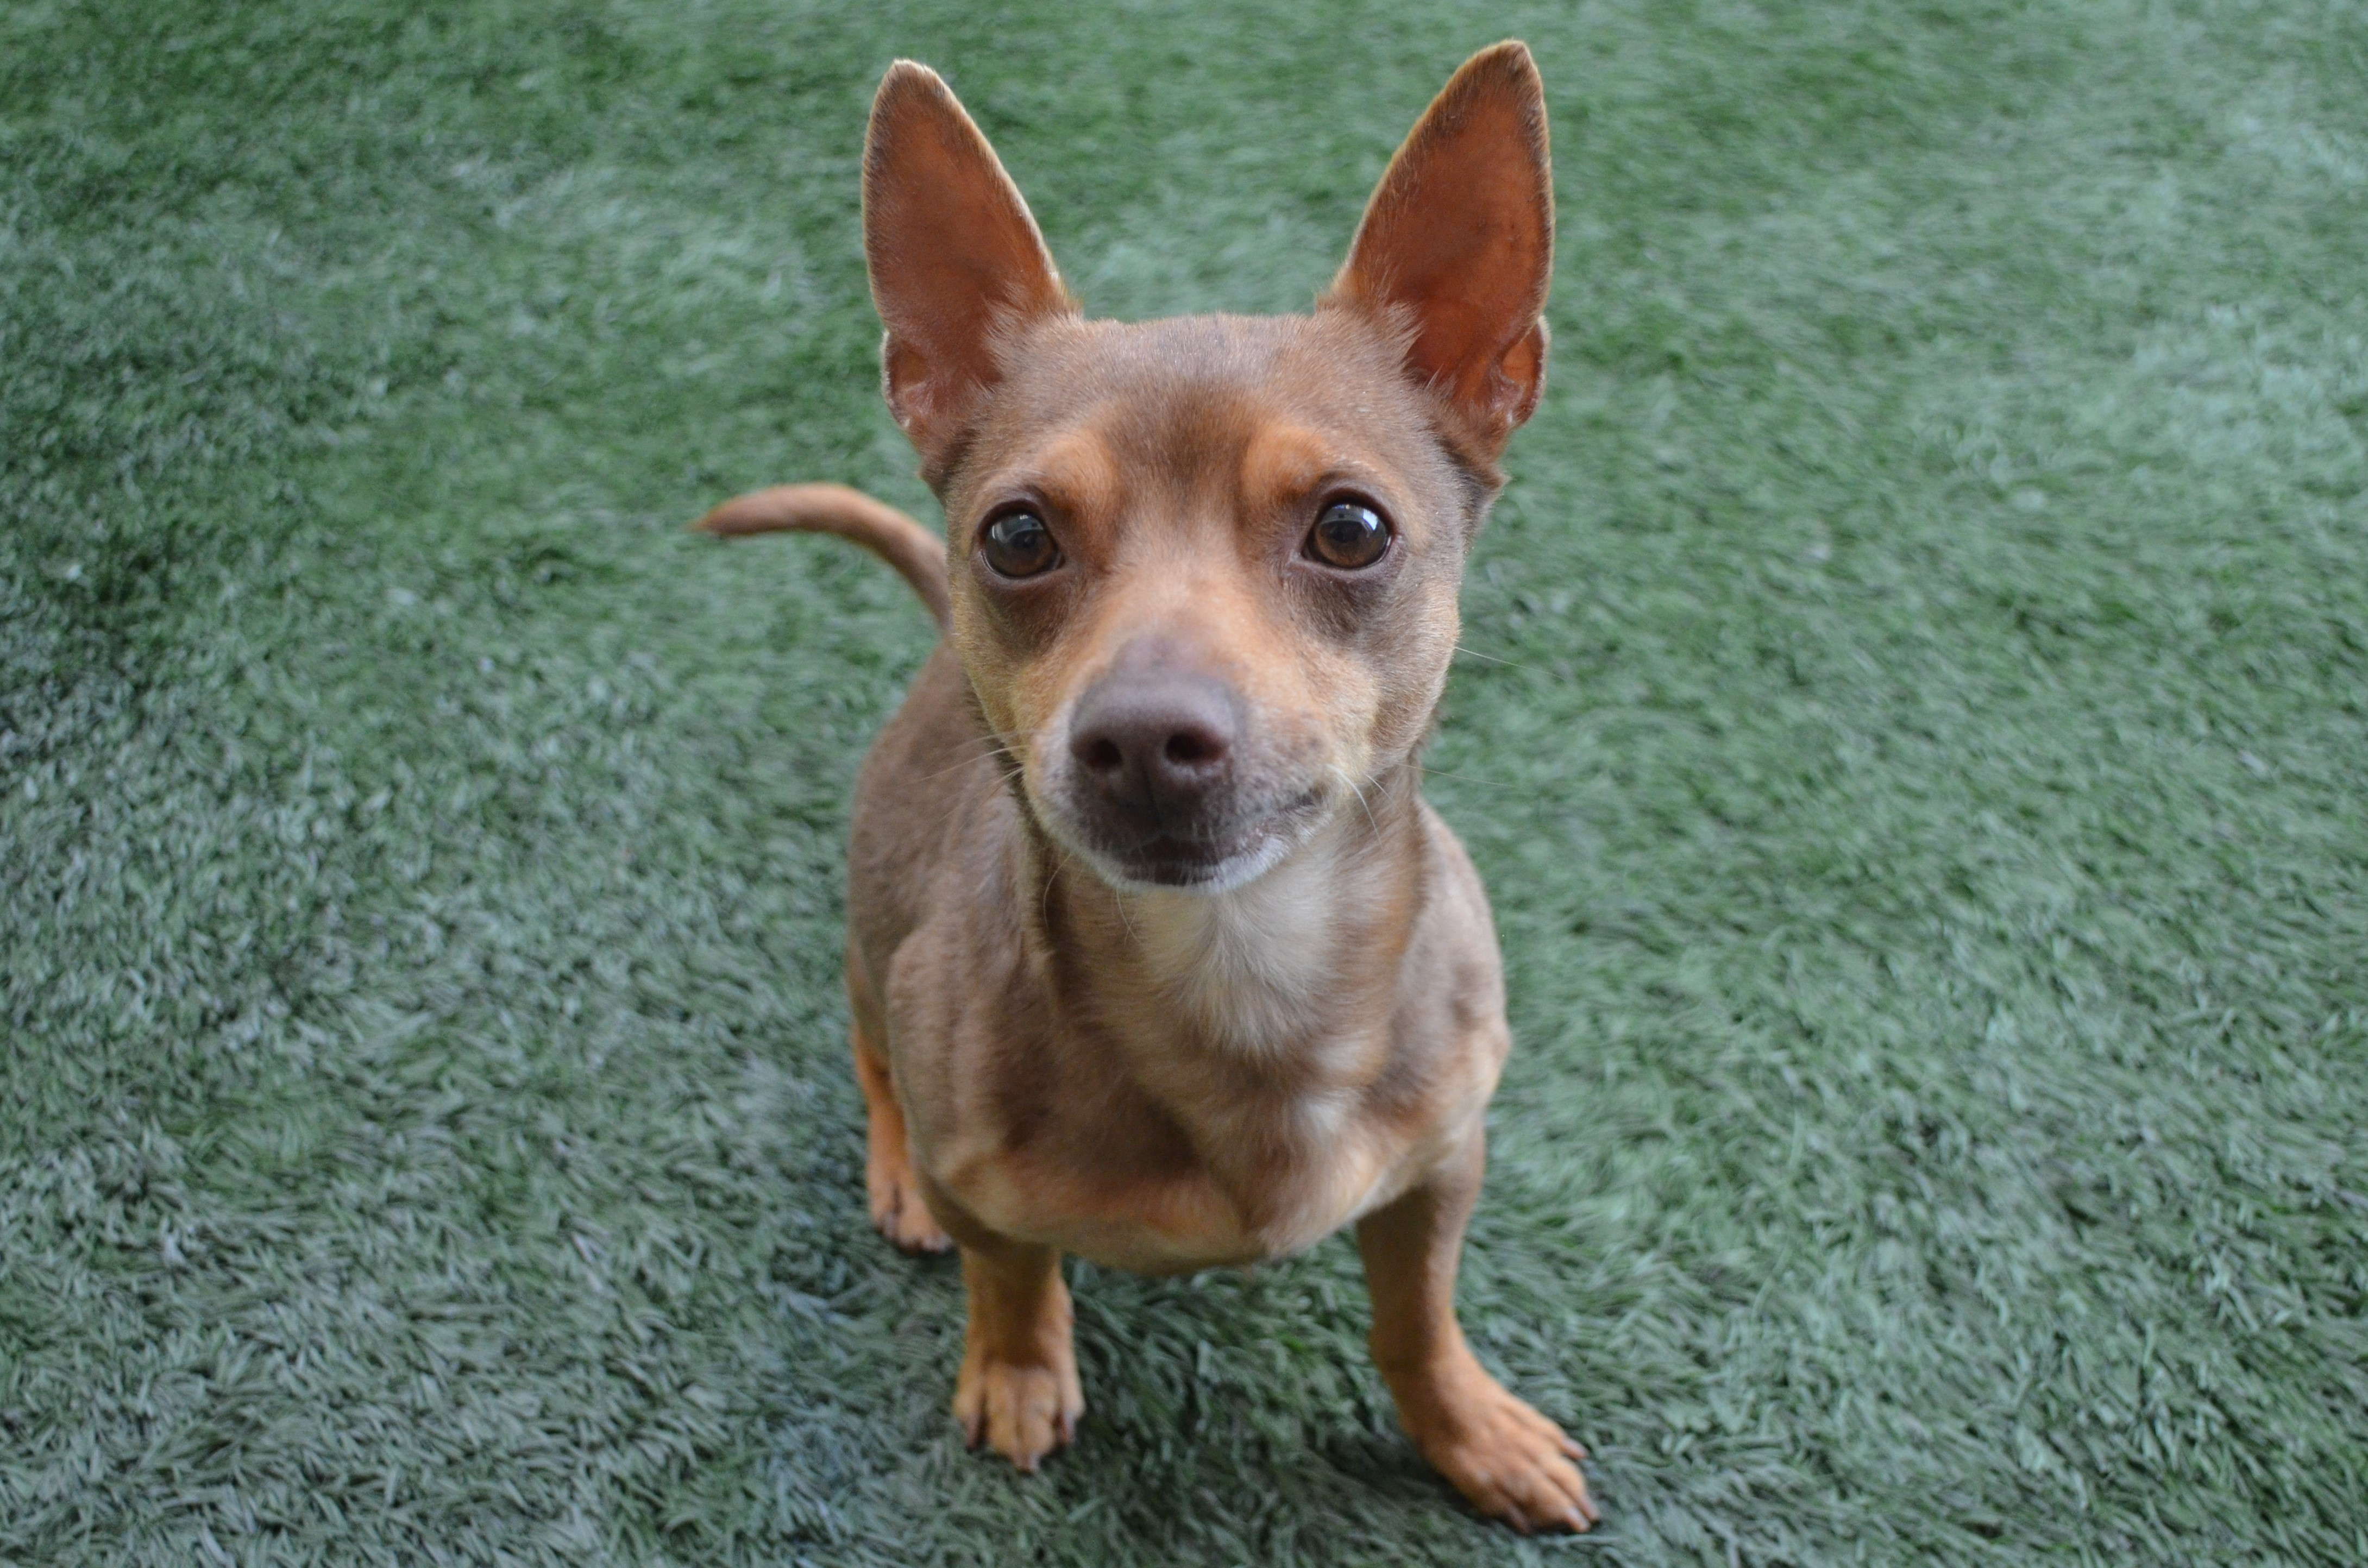 Peninsula Humane Society and SPCA's Pet of the Week: Snickers